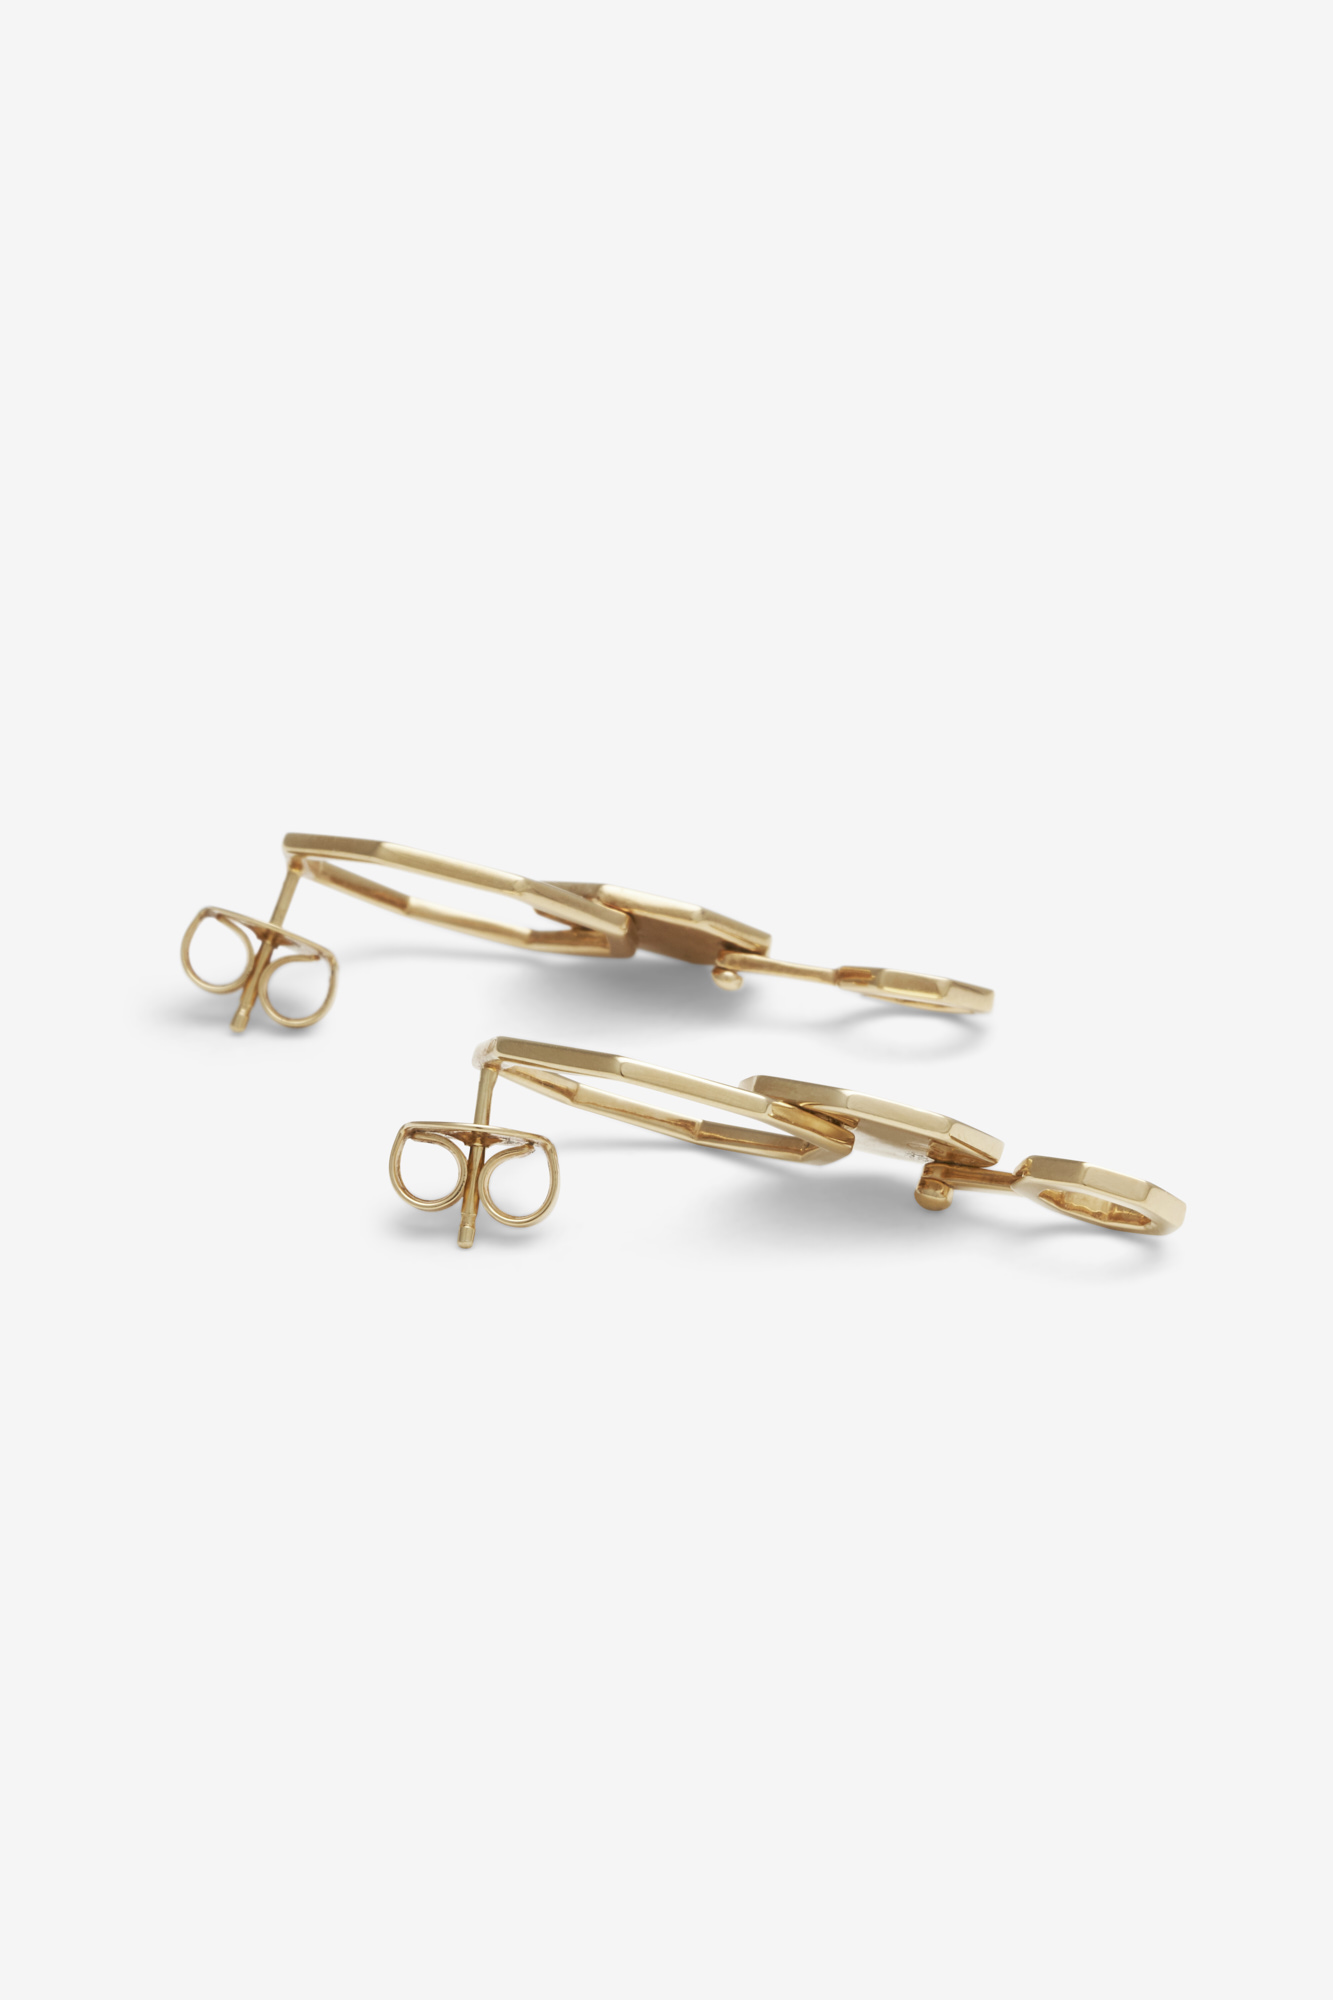 19-03-5-1-006-113-09_Beehaive Earring_Gold Plated_04